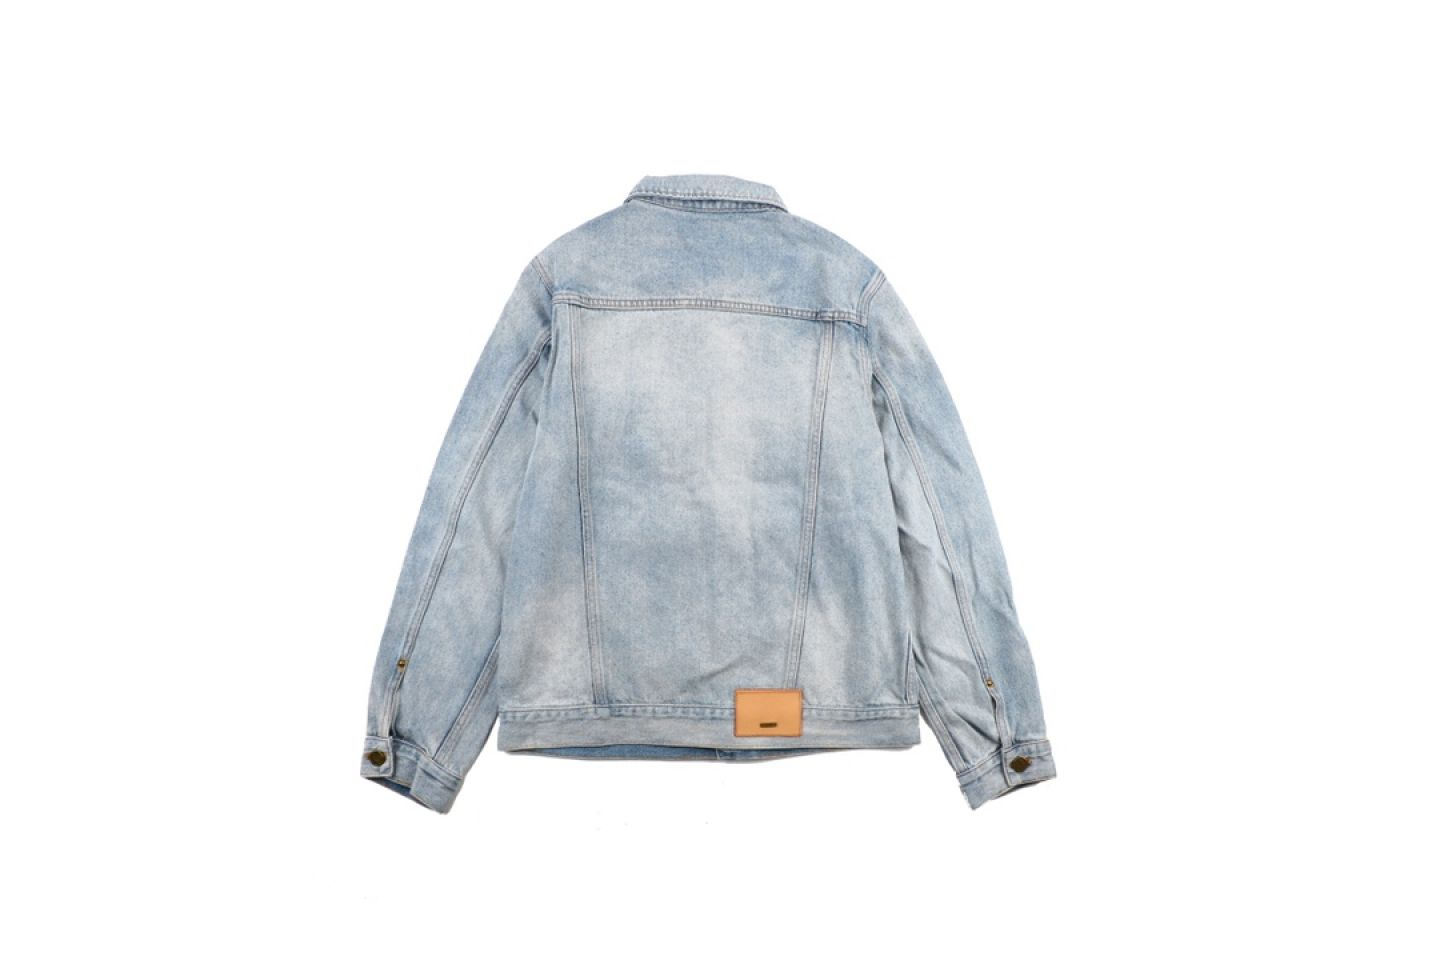 Jacket Louis Vuitton 20fw wash list vintage denim jacket 5 louis_vuitton_20fw_wash_list_vintage_denim_jacket_5